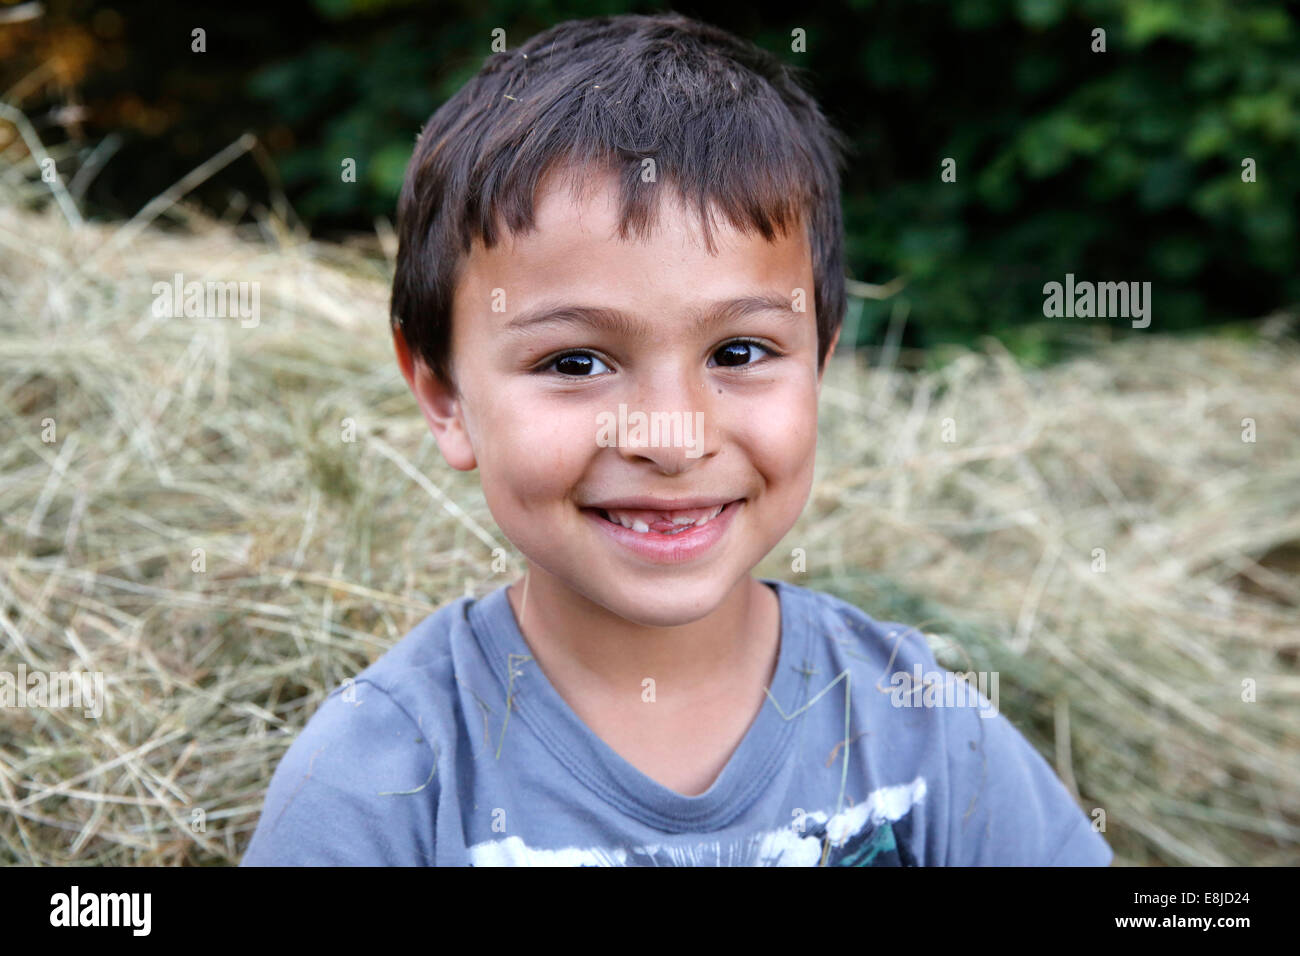 7-year-old boy with missing teeth Stock Photo: 74164108 - Alamy